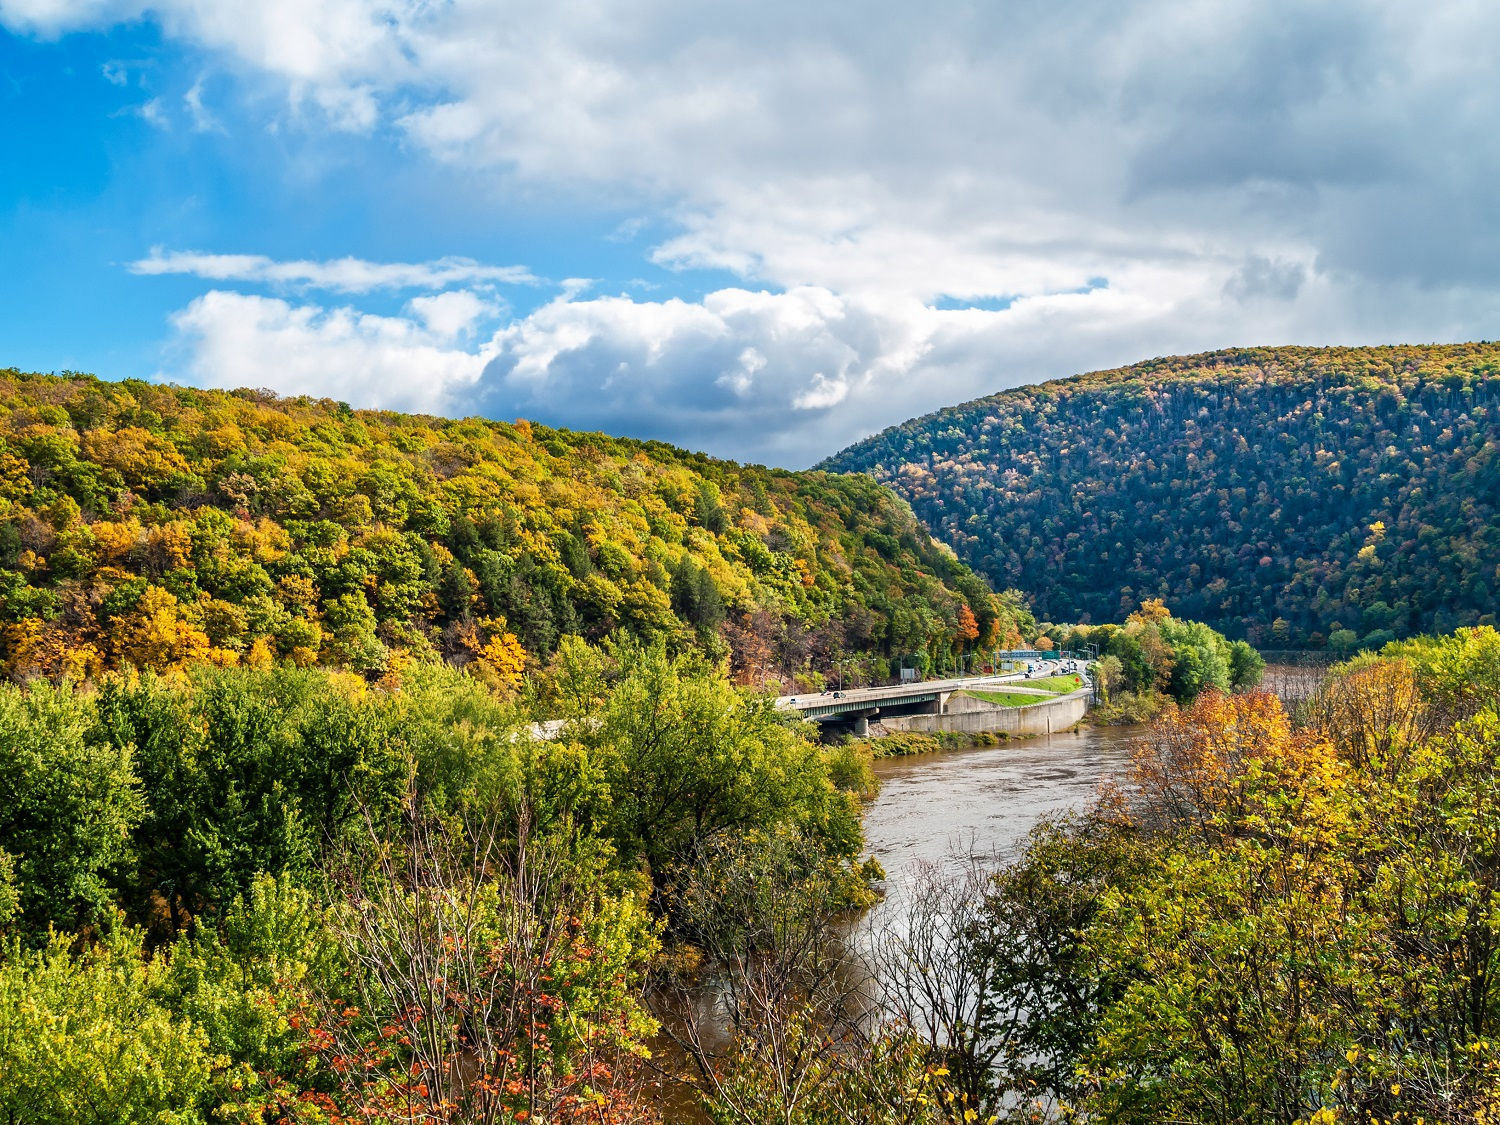 The Best Things To See And Do On The Delaware Scenic Byway